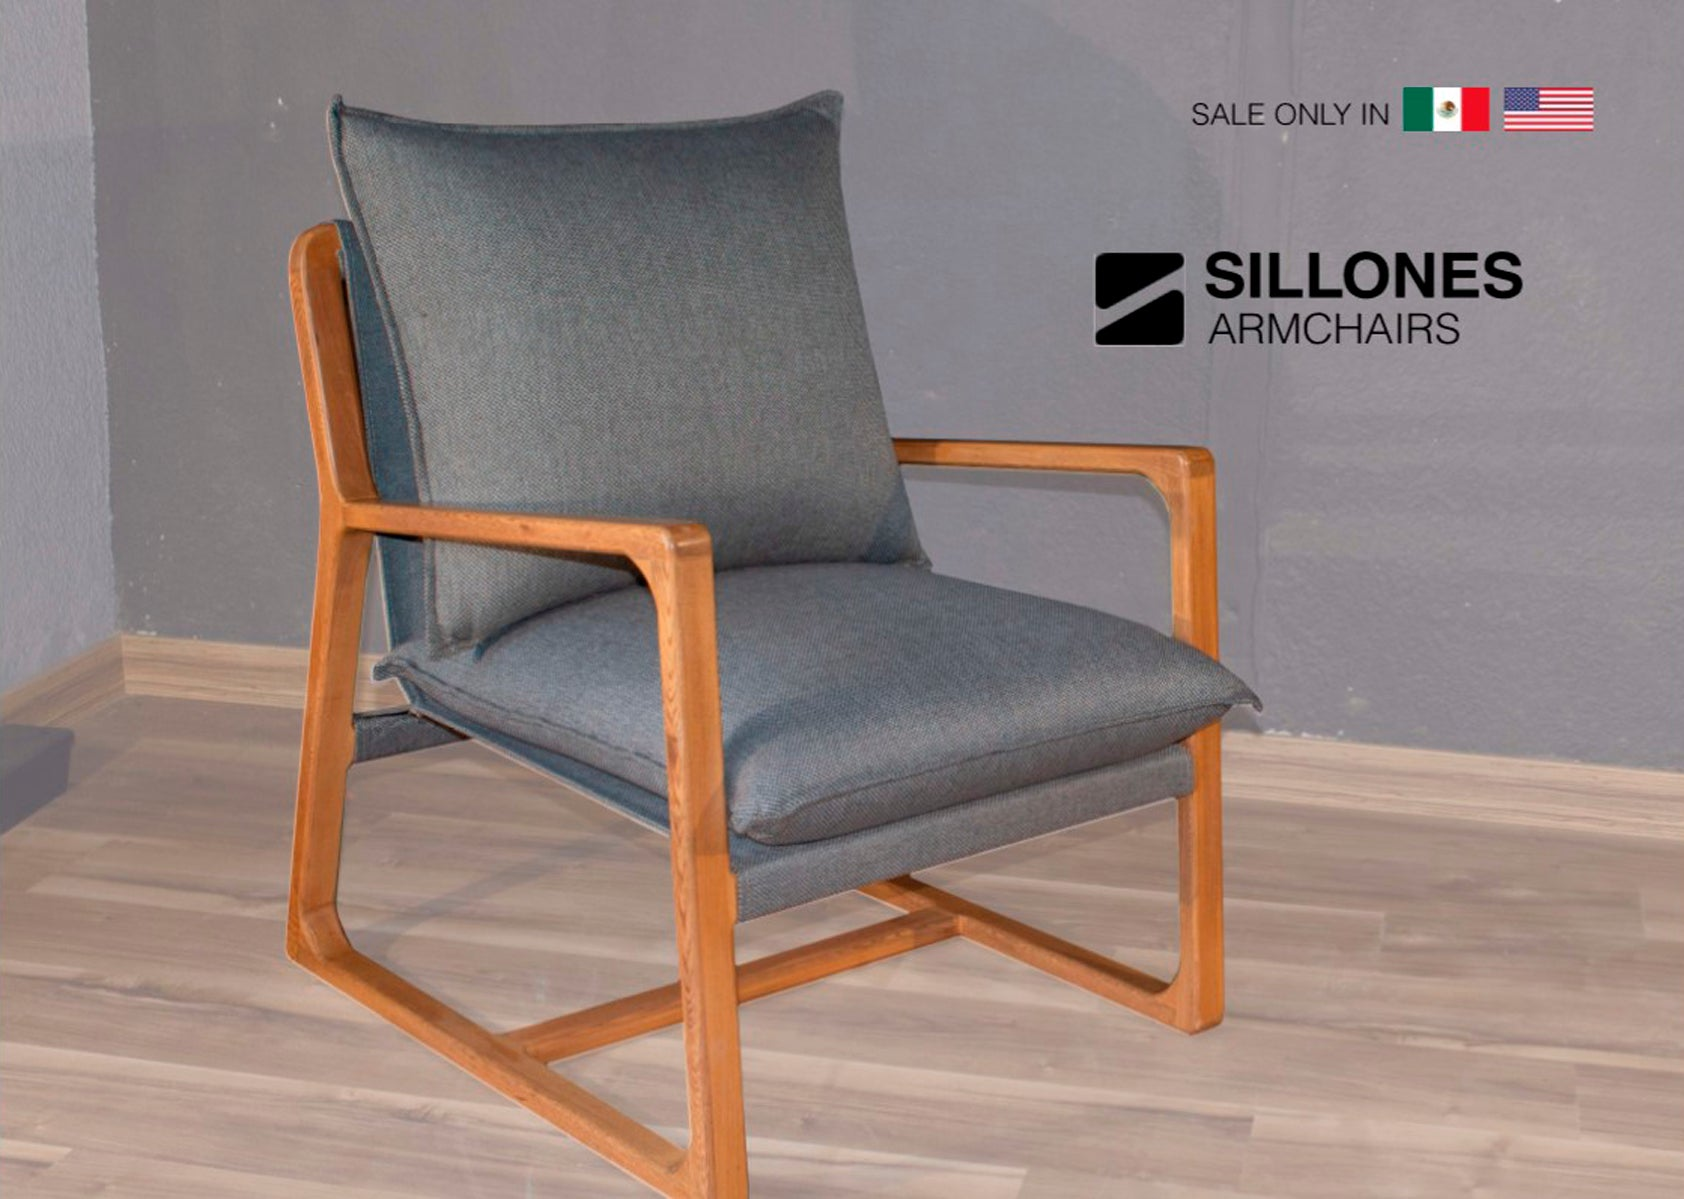 SILLONES // ARMCHAIRS